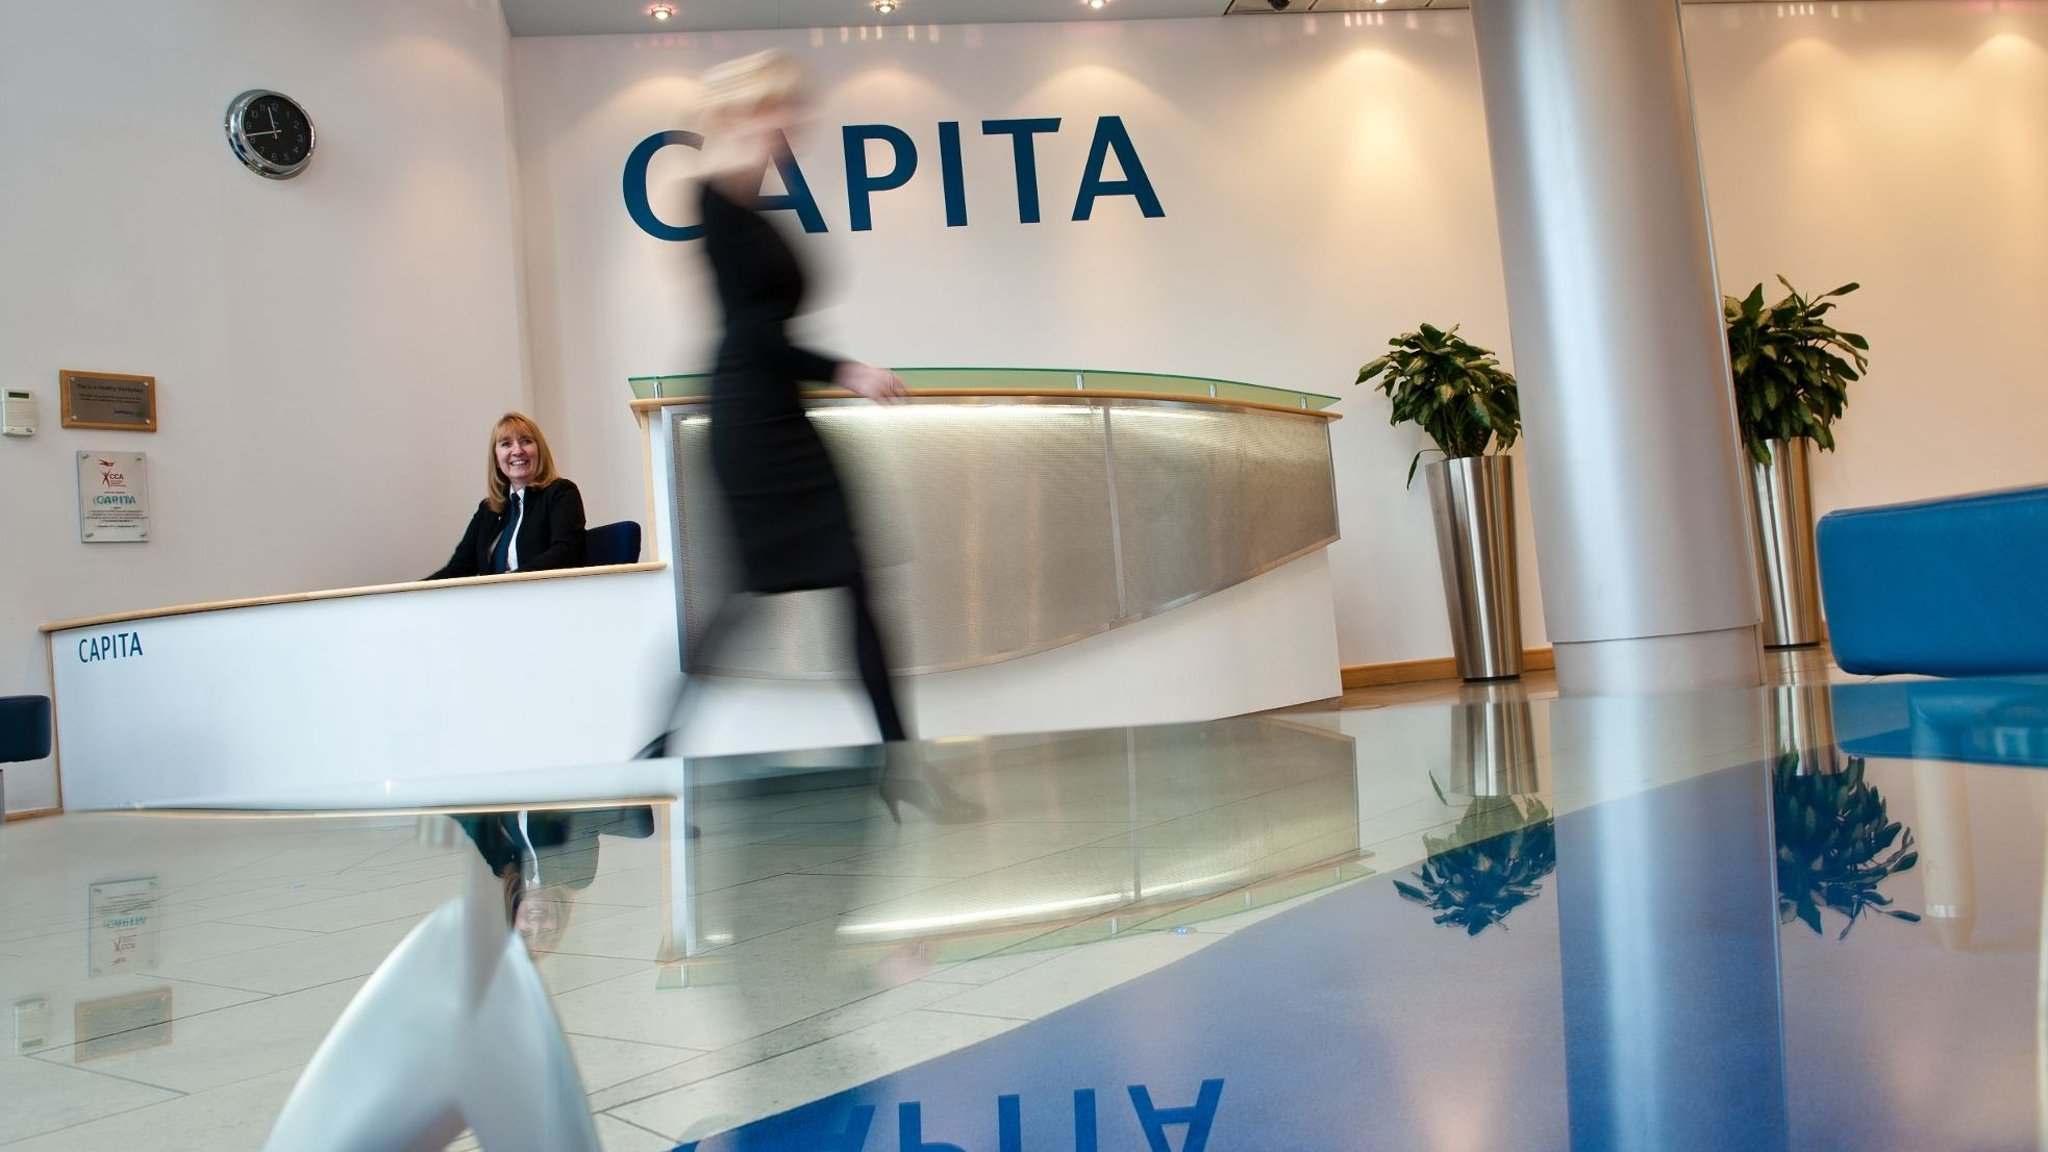 Capita Shares Fall To 10 Year Low After Latest Profit Warning